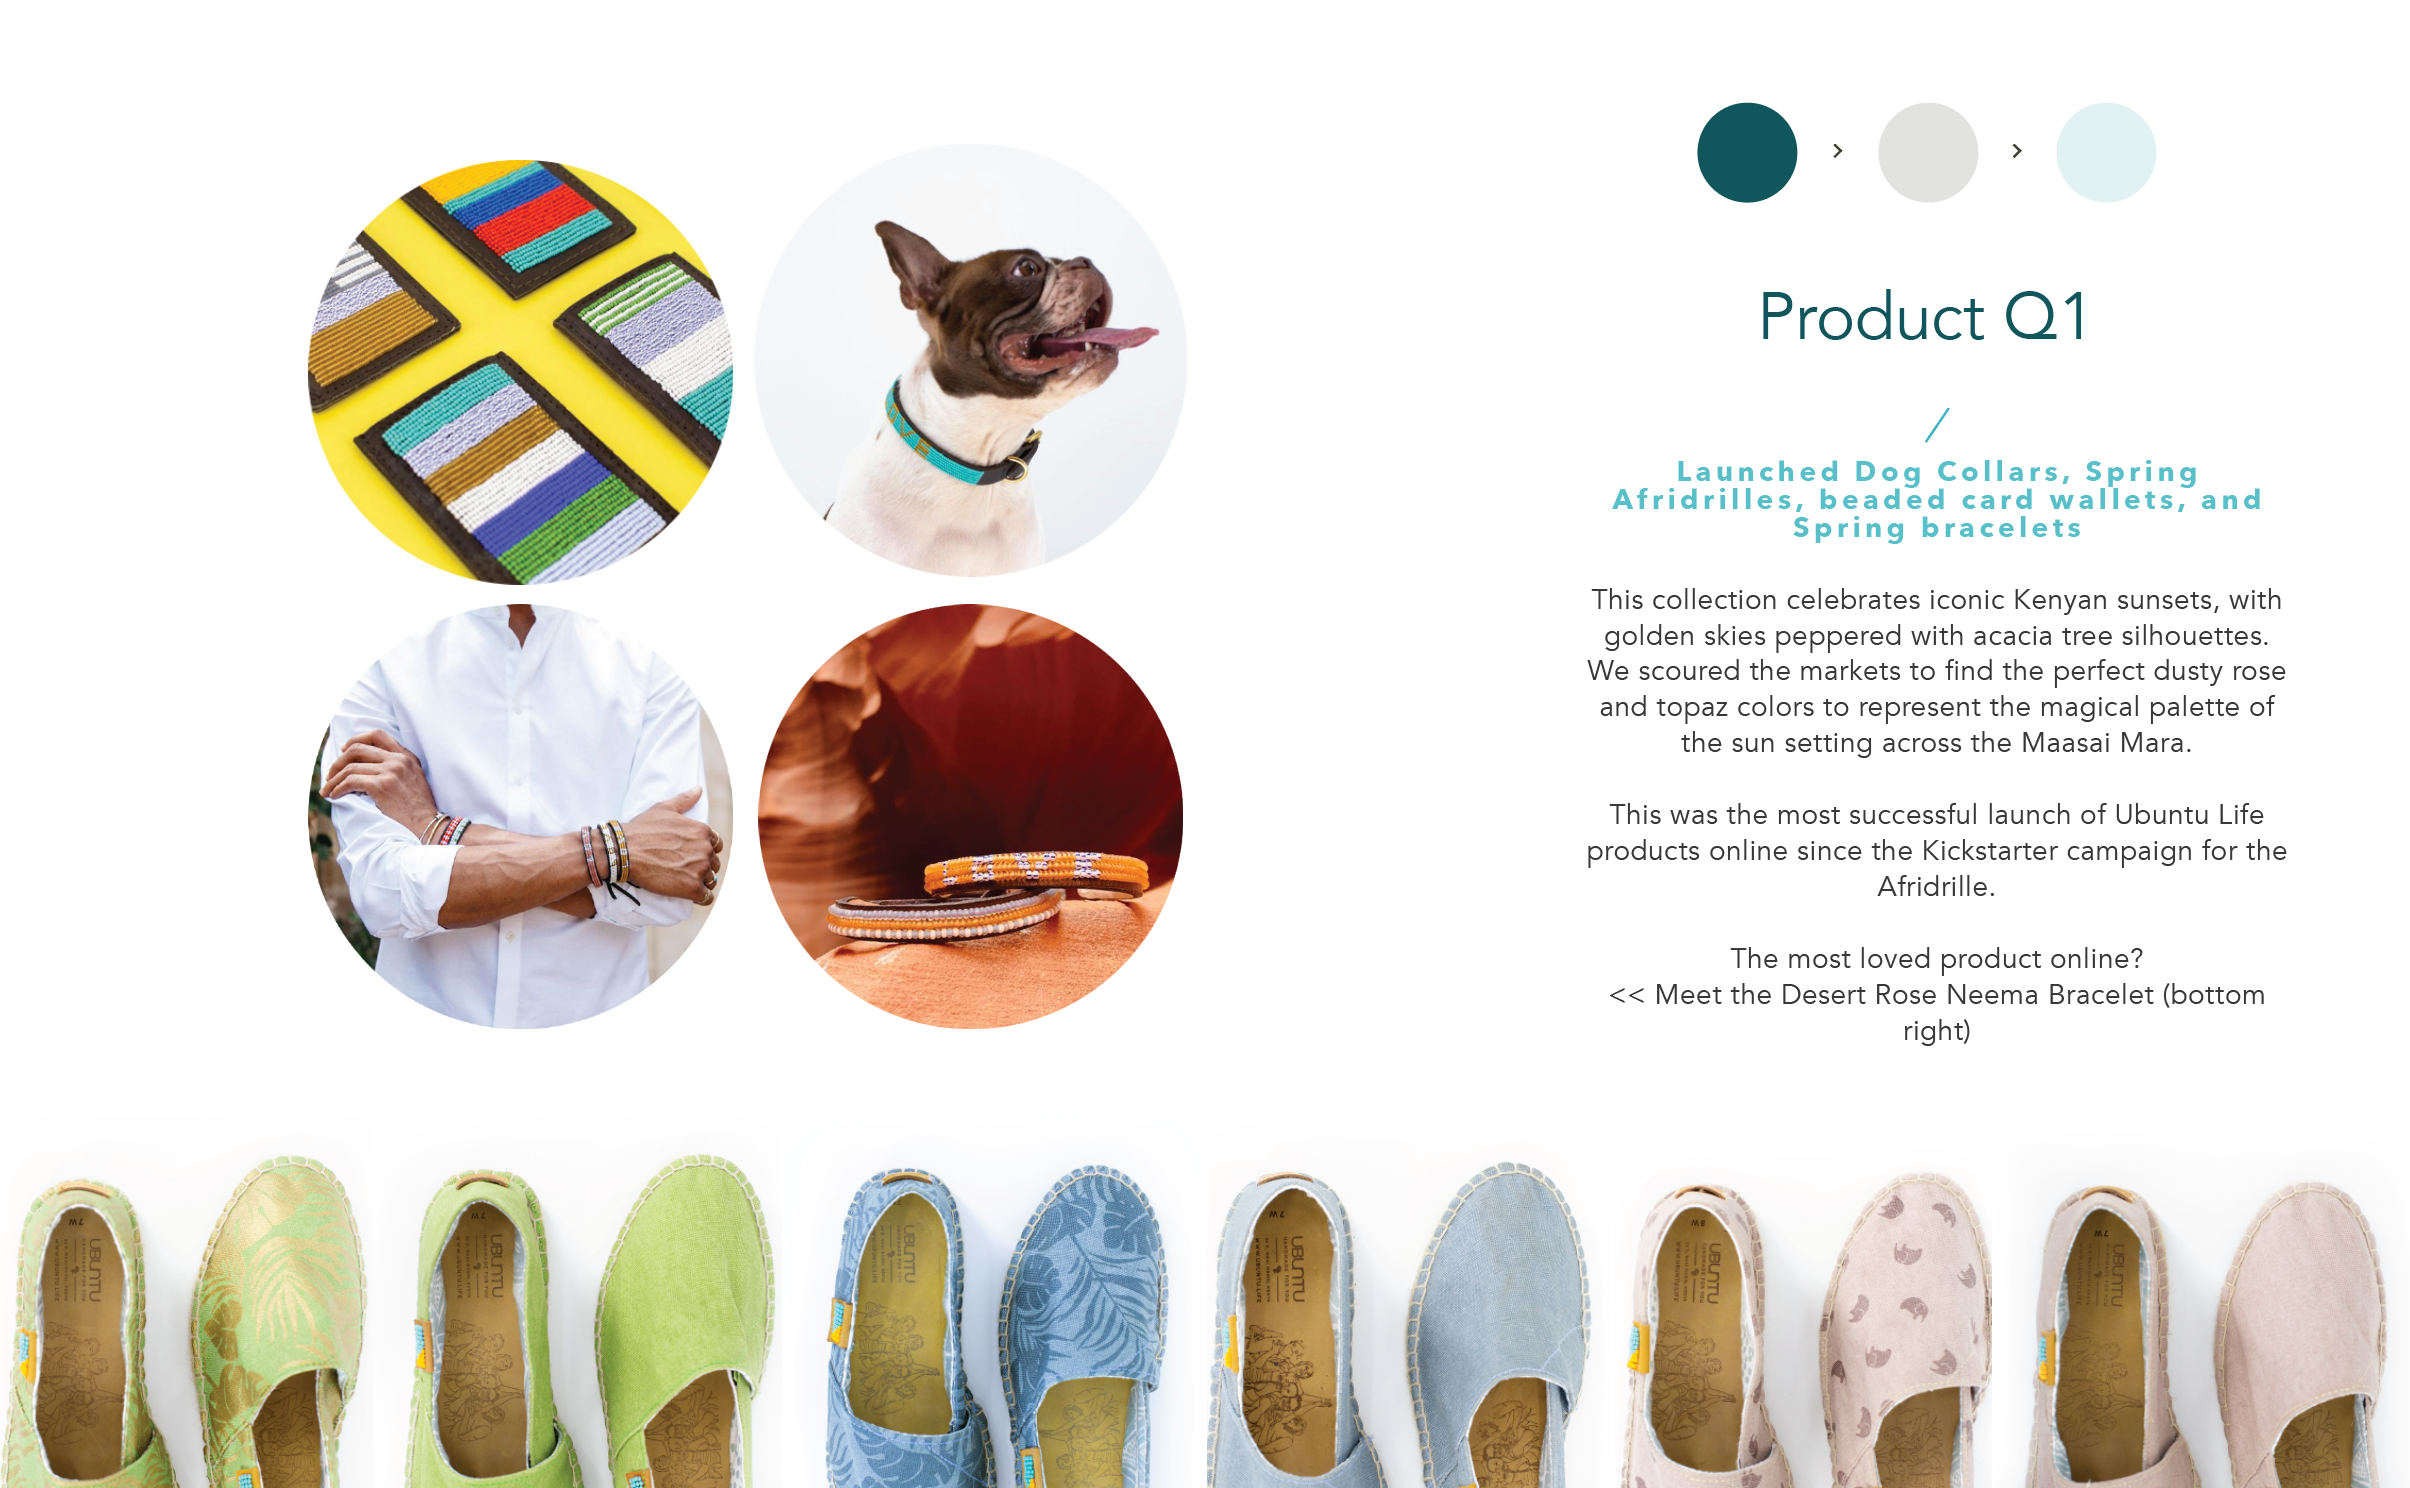 Q1 product launches